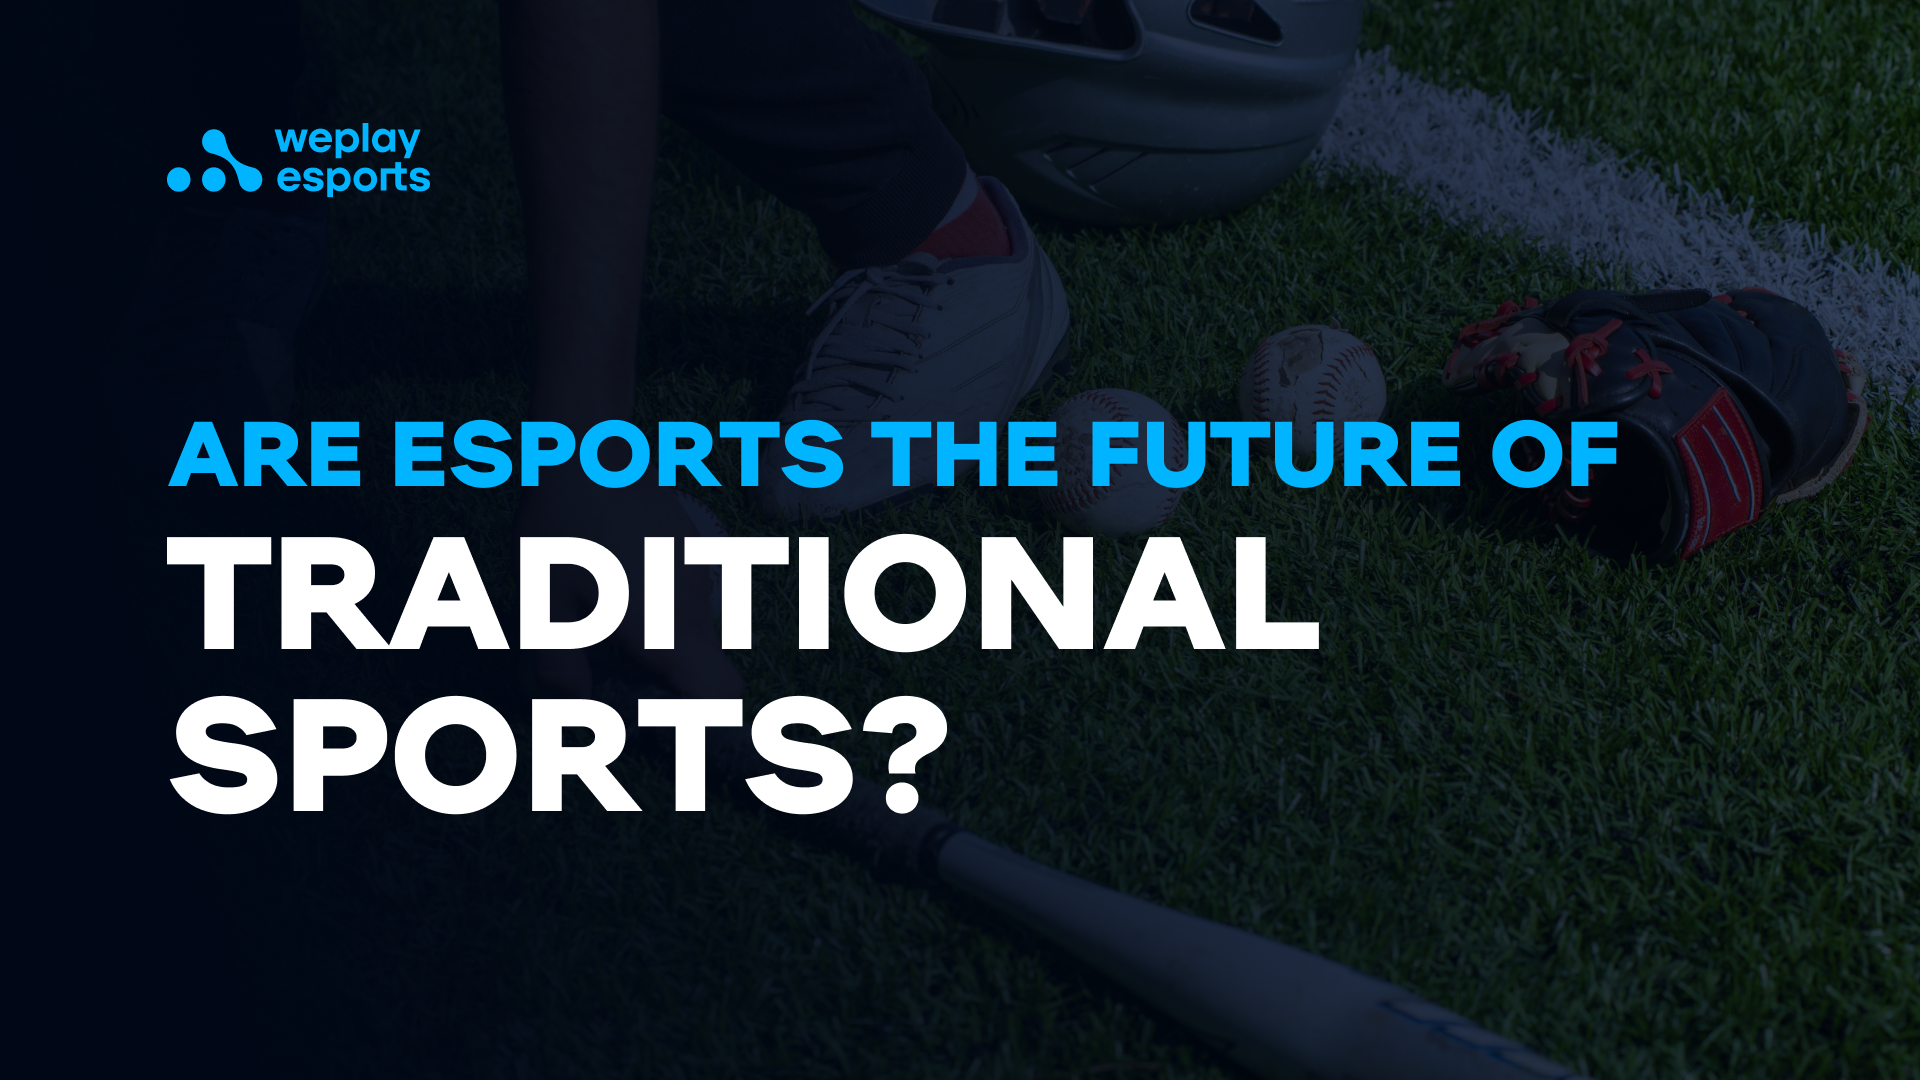 Are esports the future of traditional sports?